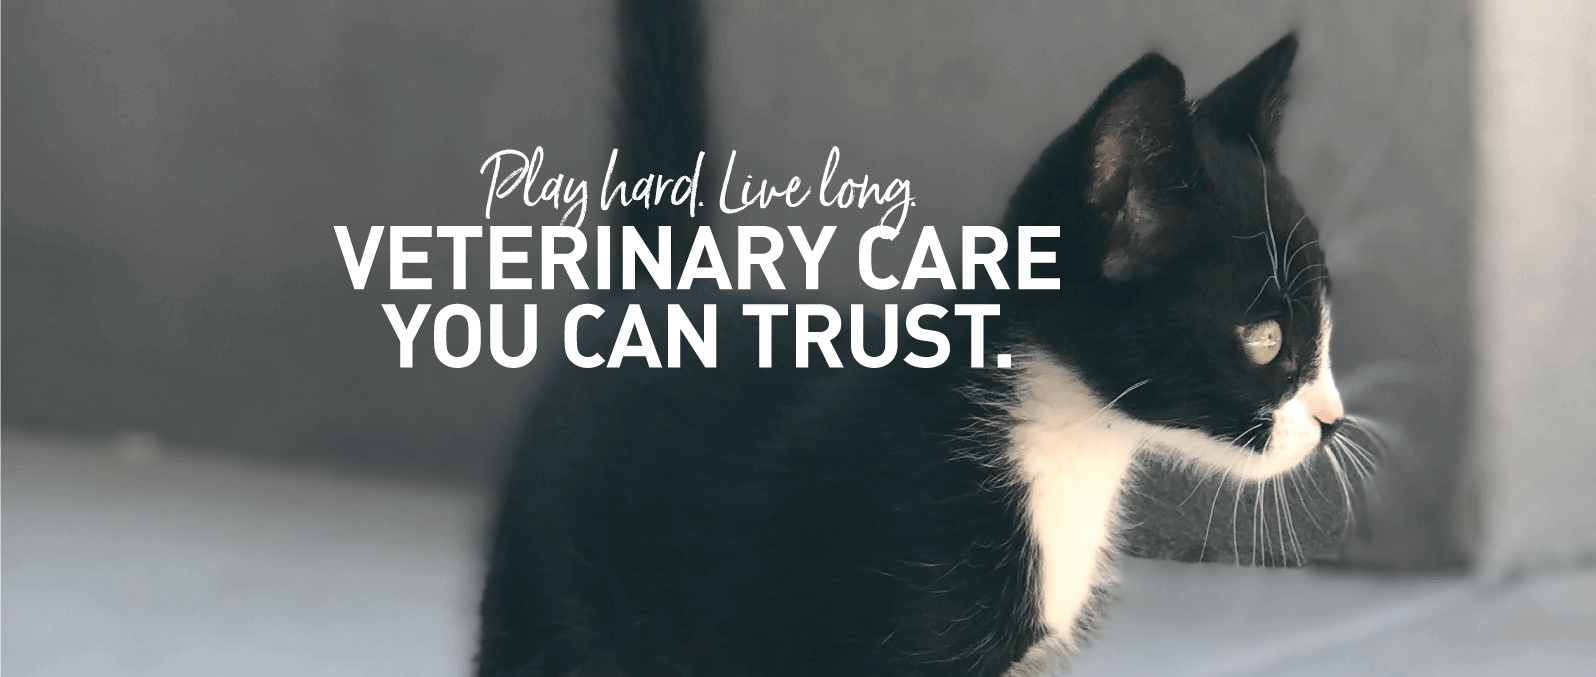 Veterinary Care You Can Trust.